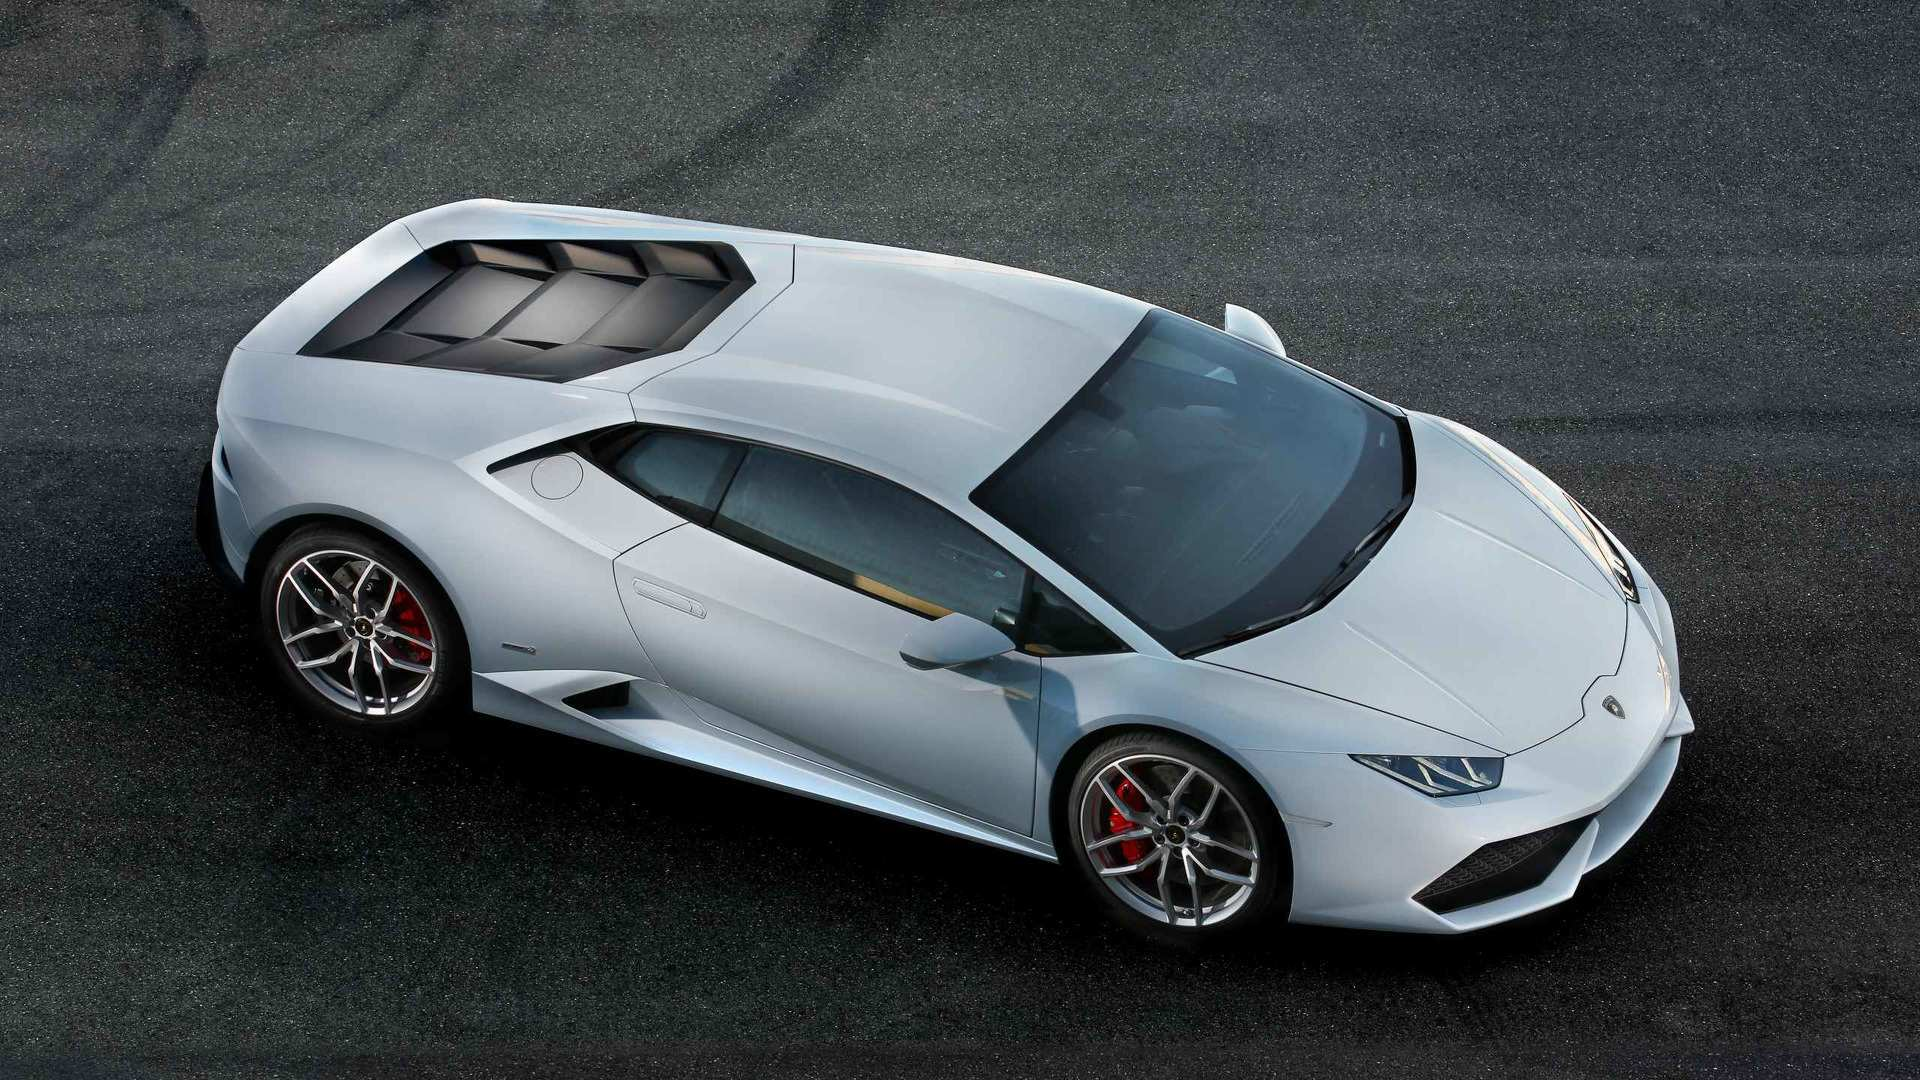 23 New 2019 Lamborghini Huracan Horsepower Prices for 2019 Lamborghini Huracan Horsepower